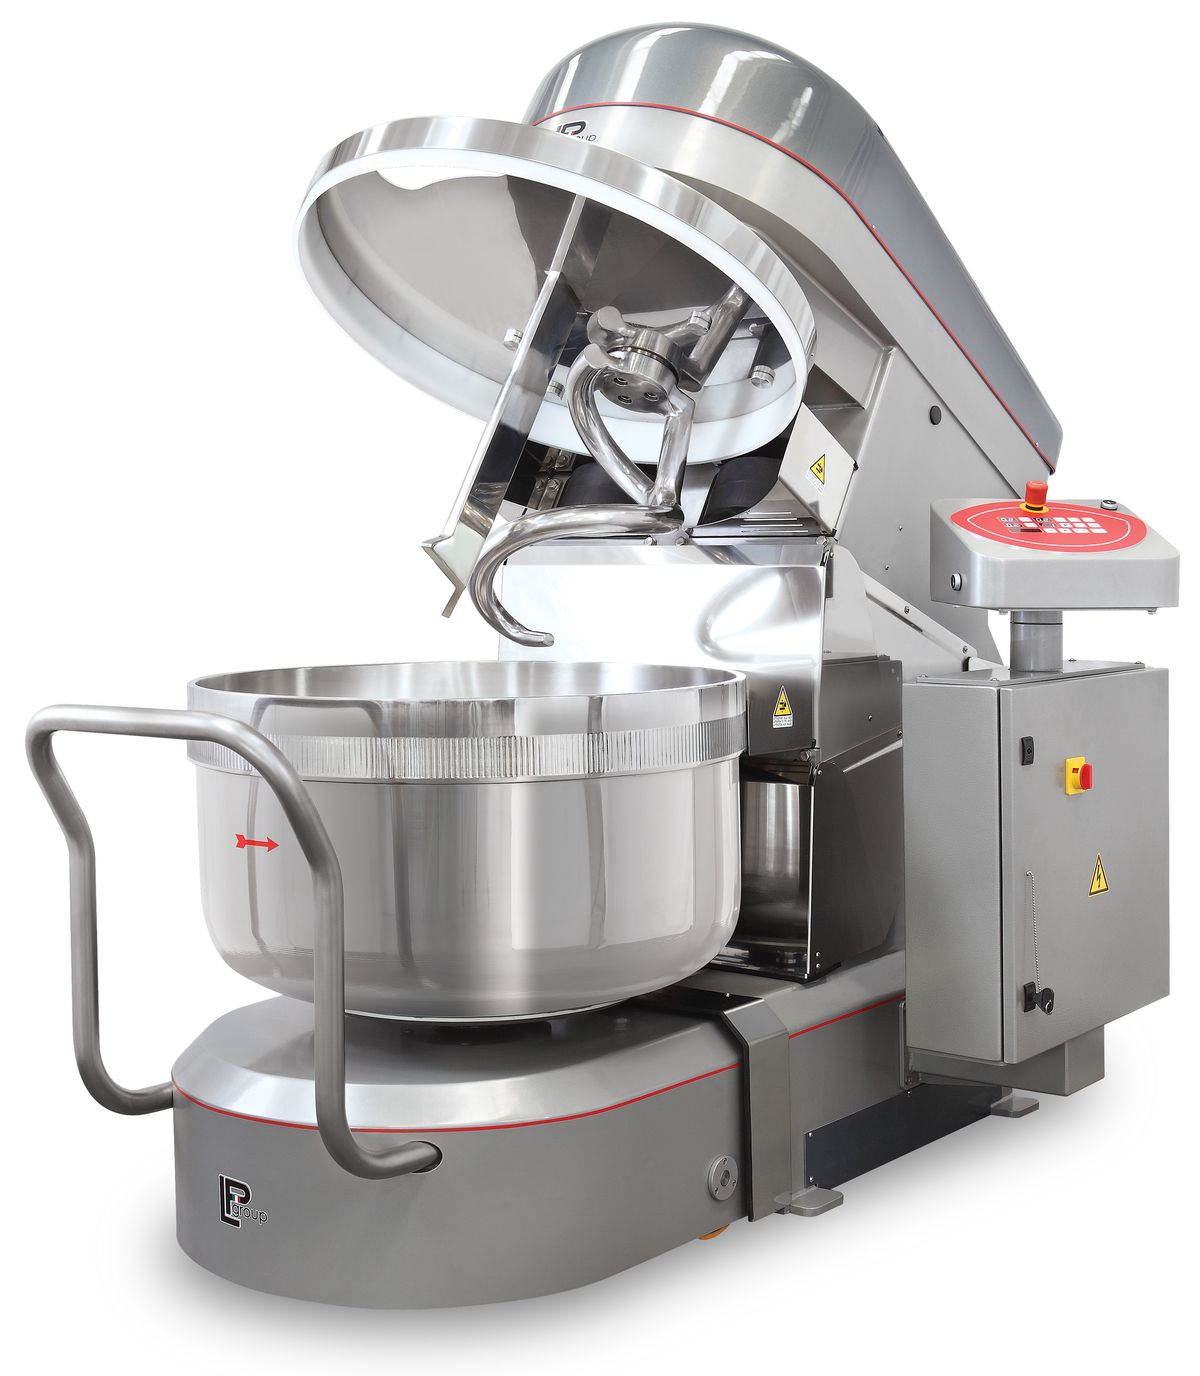 LP Group LUX / LUX-R detachable bowl spiral mixer